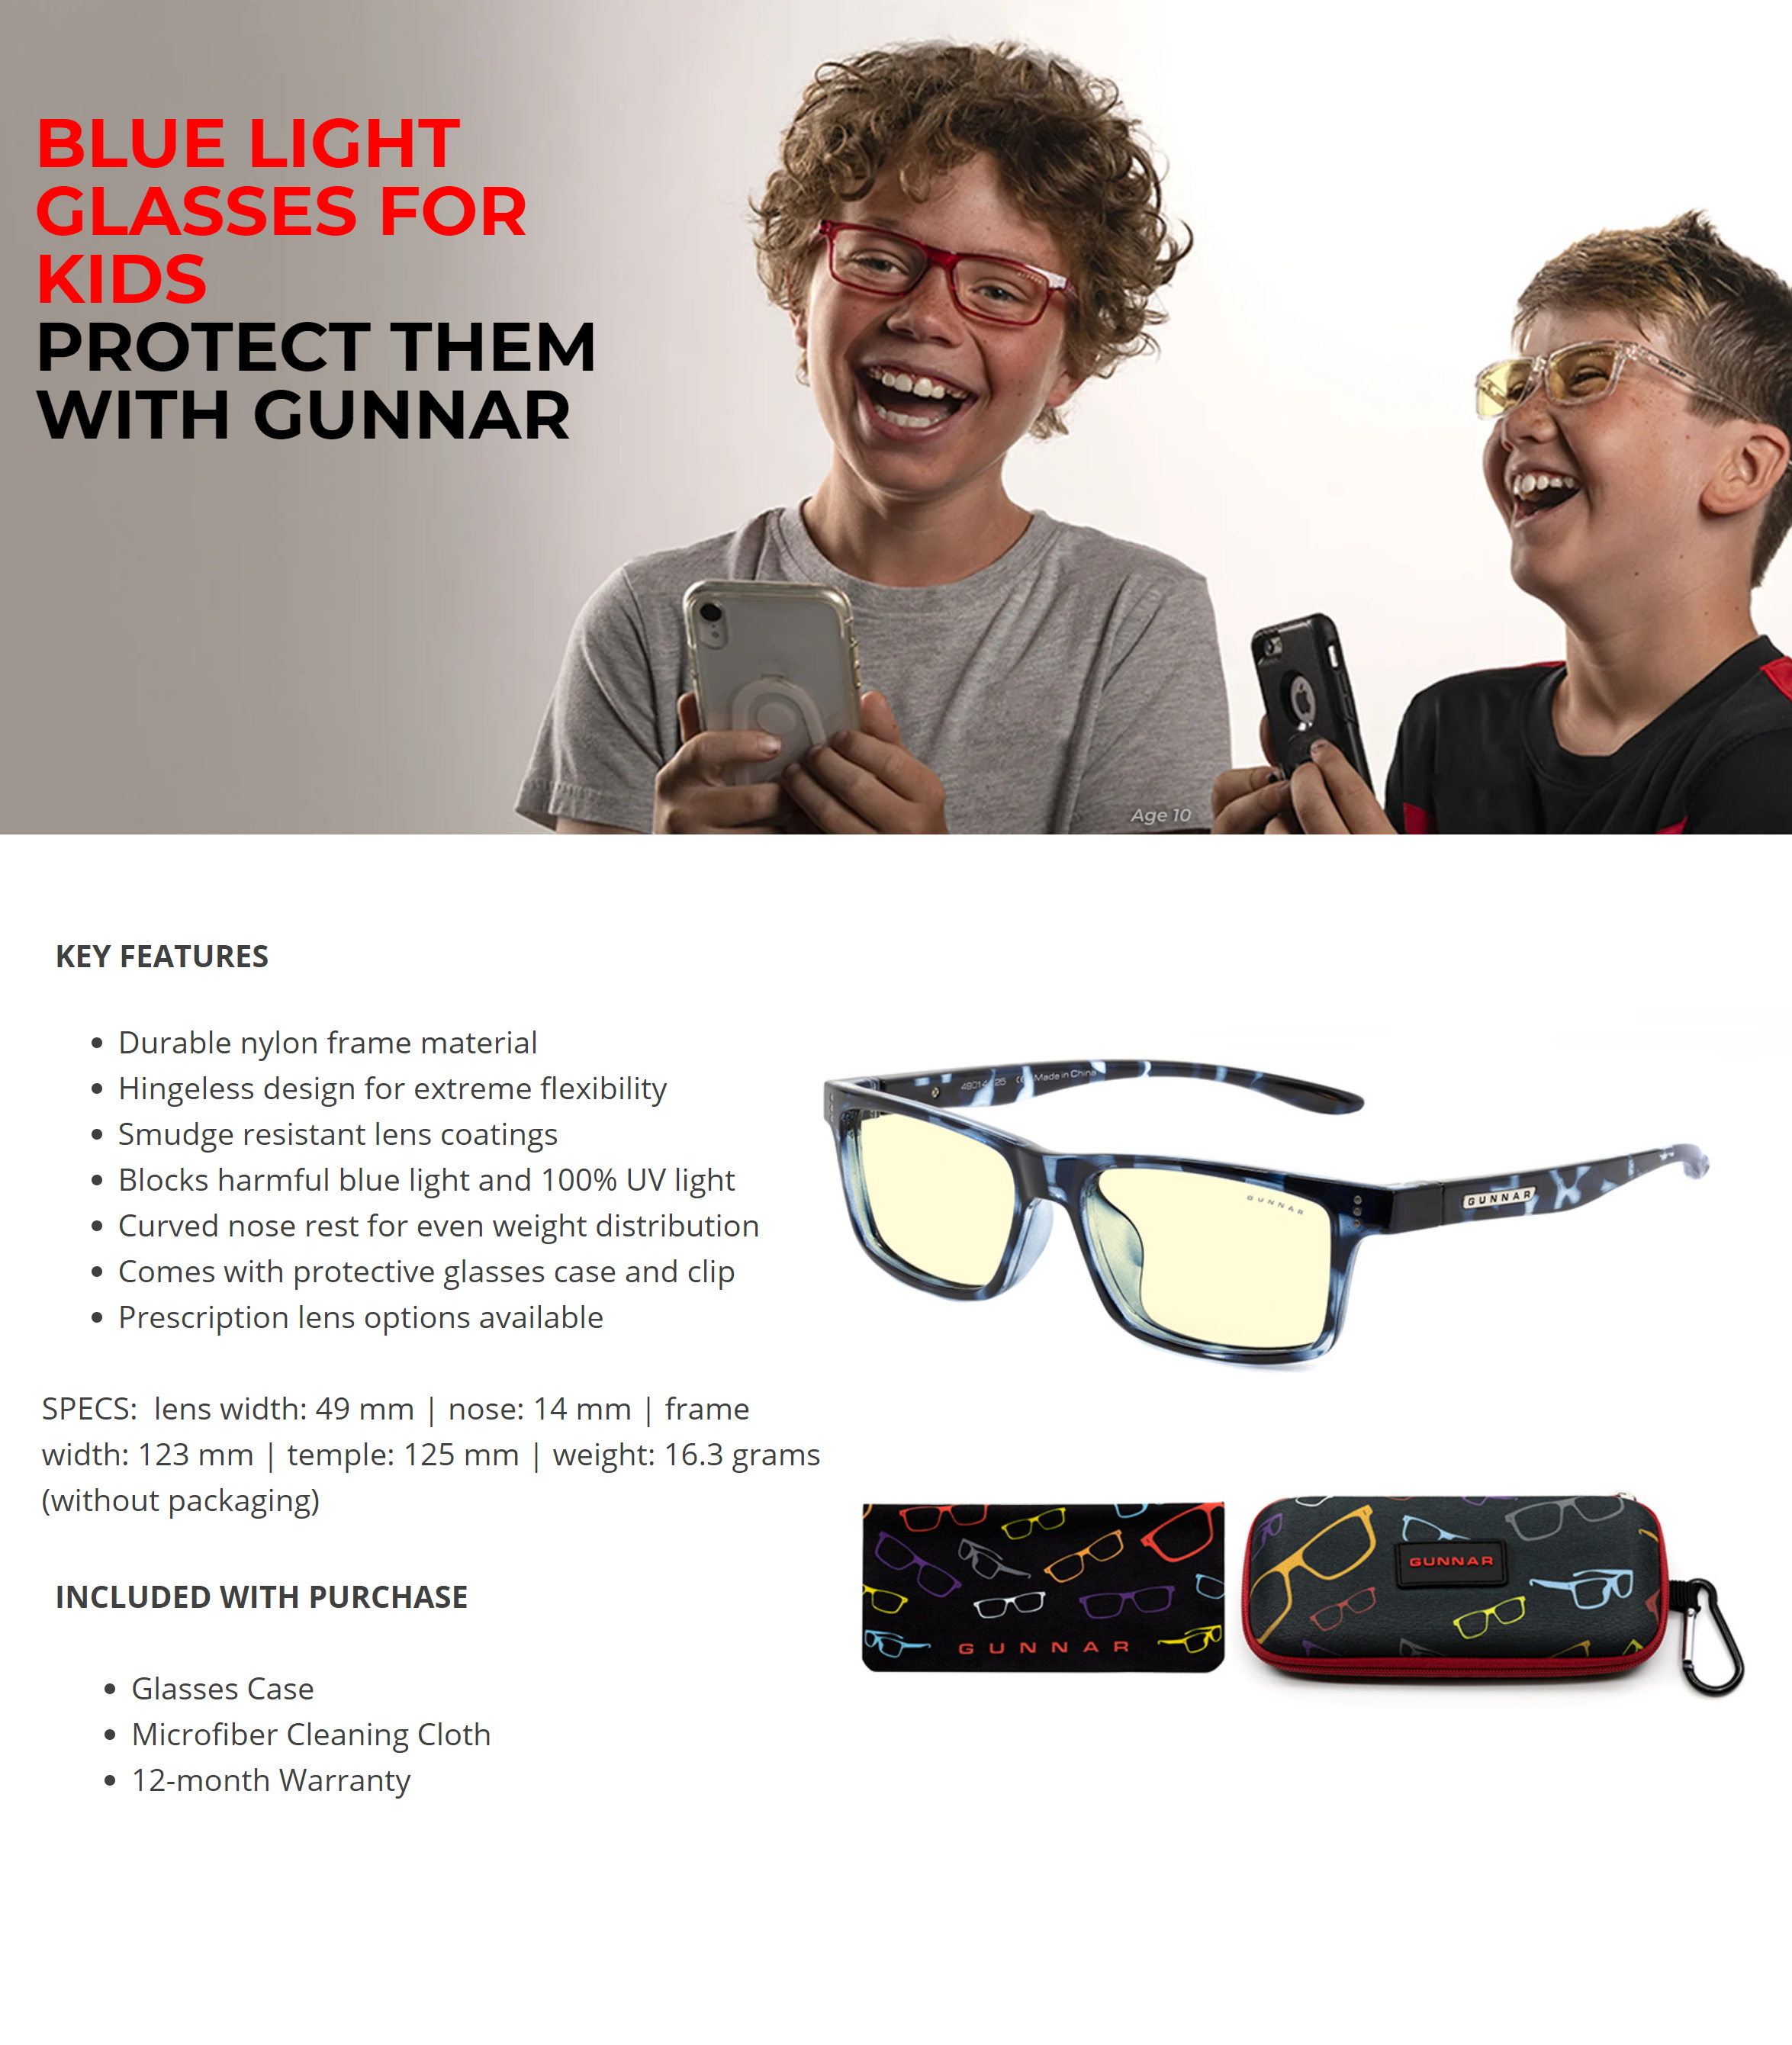 A large marketing image providing additional information about the product Gunnar Cruz Kids Amber Navy Tortoise Indoor Digital Eyewear Large - Additional alt info not provided